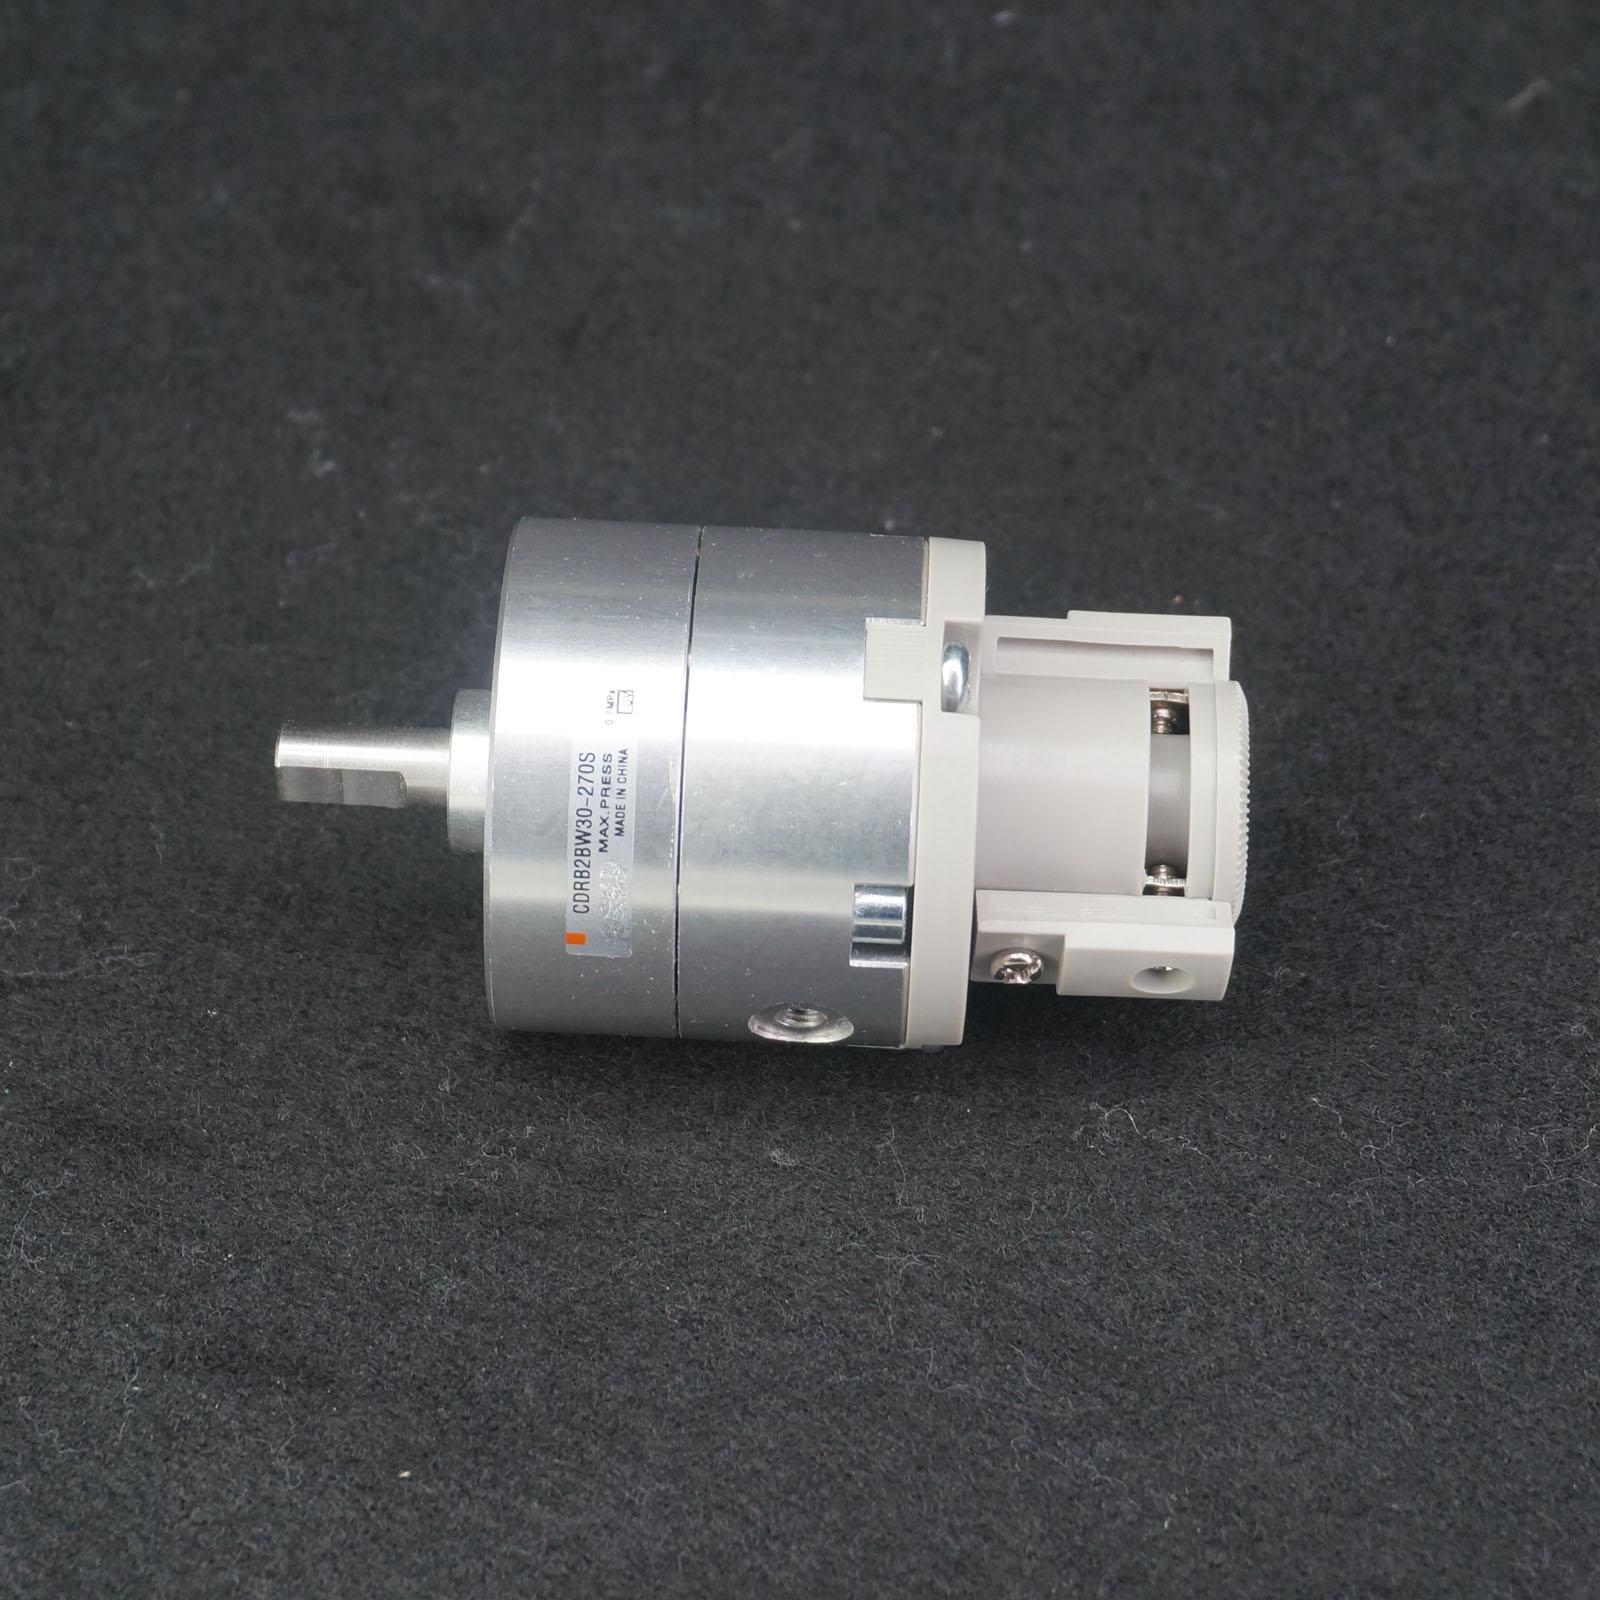 CDRB2BW30-270S Rotary Cylinder 30mm Rotate 270 Double Shaft With MagnetCDRB2BW30-270S Rotary Cylinder 30mm Rotate 270 Double Shaft With Magnet